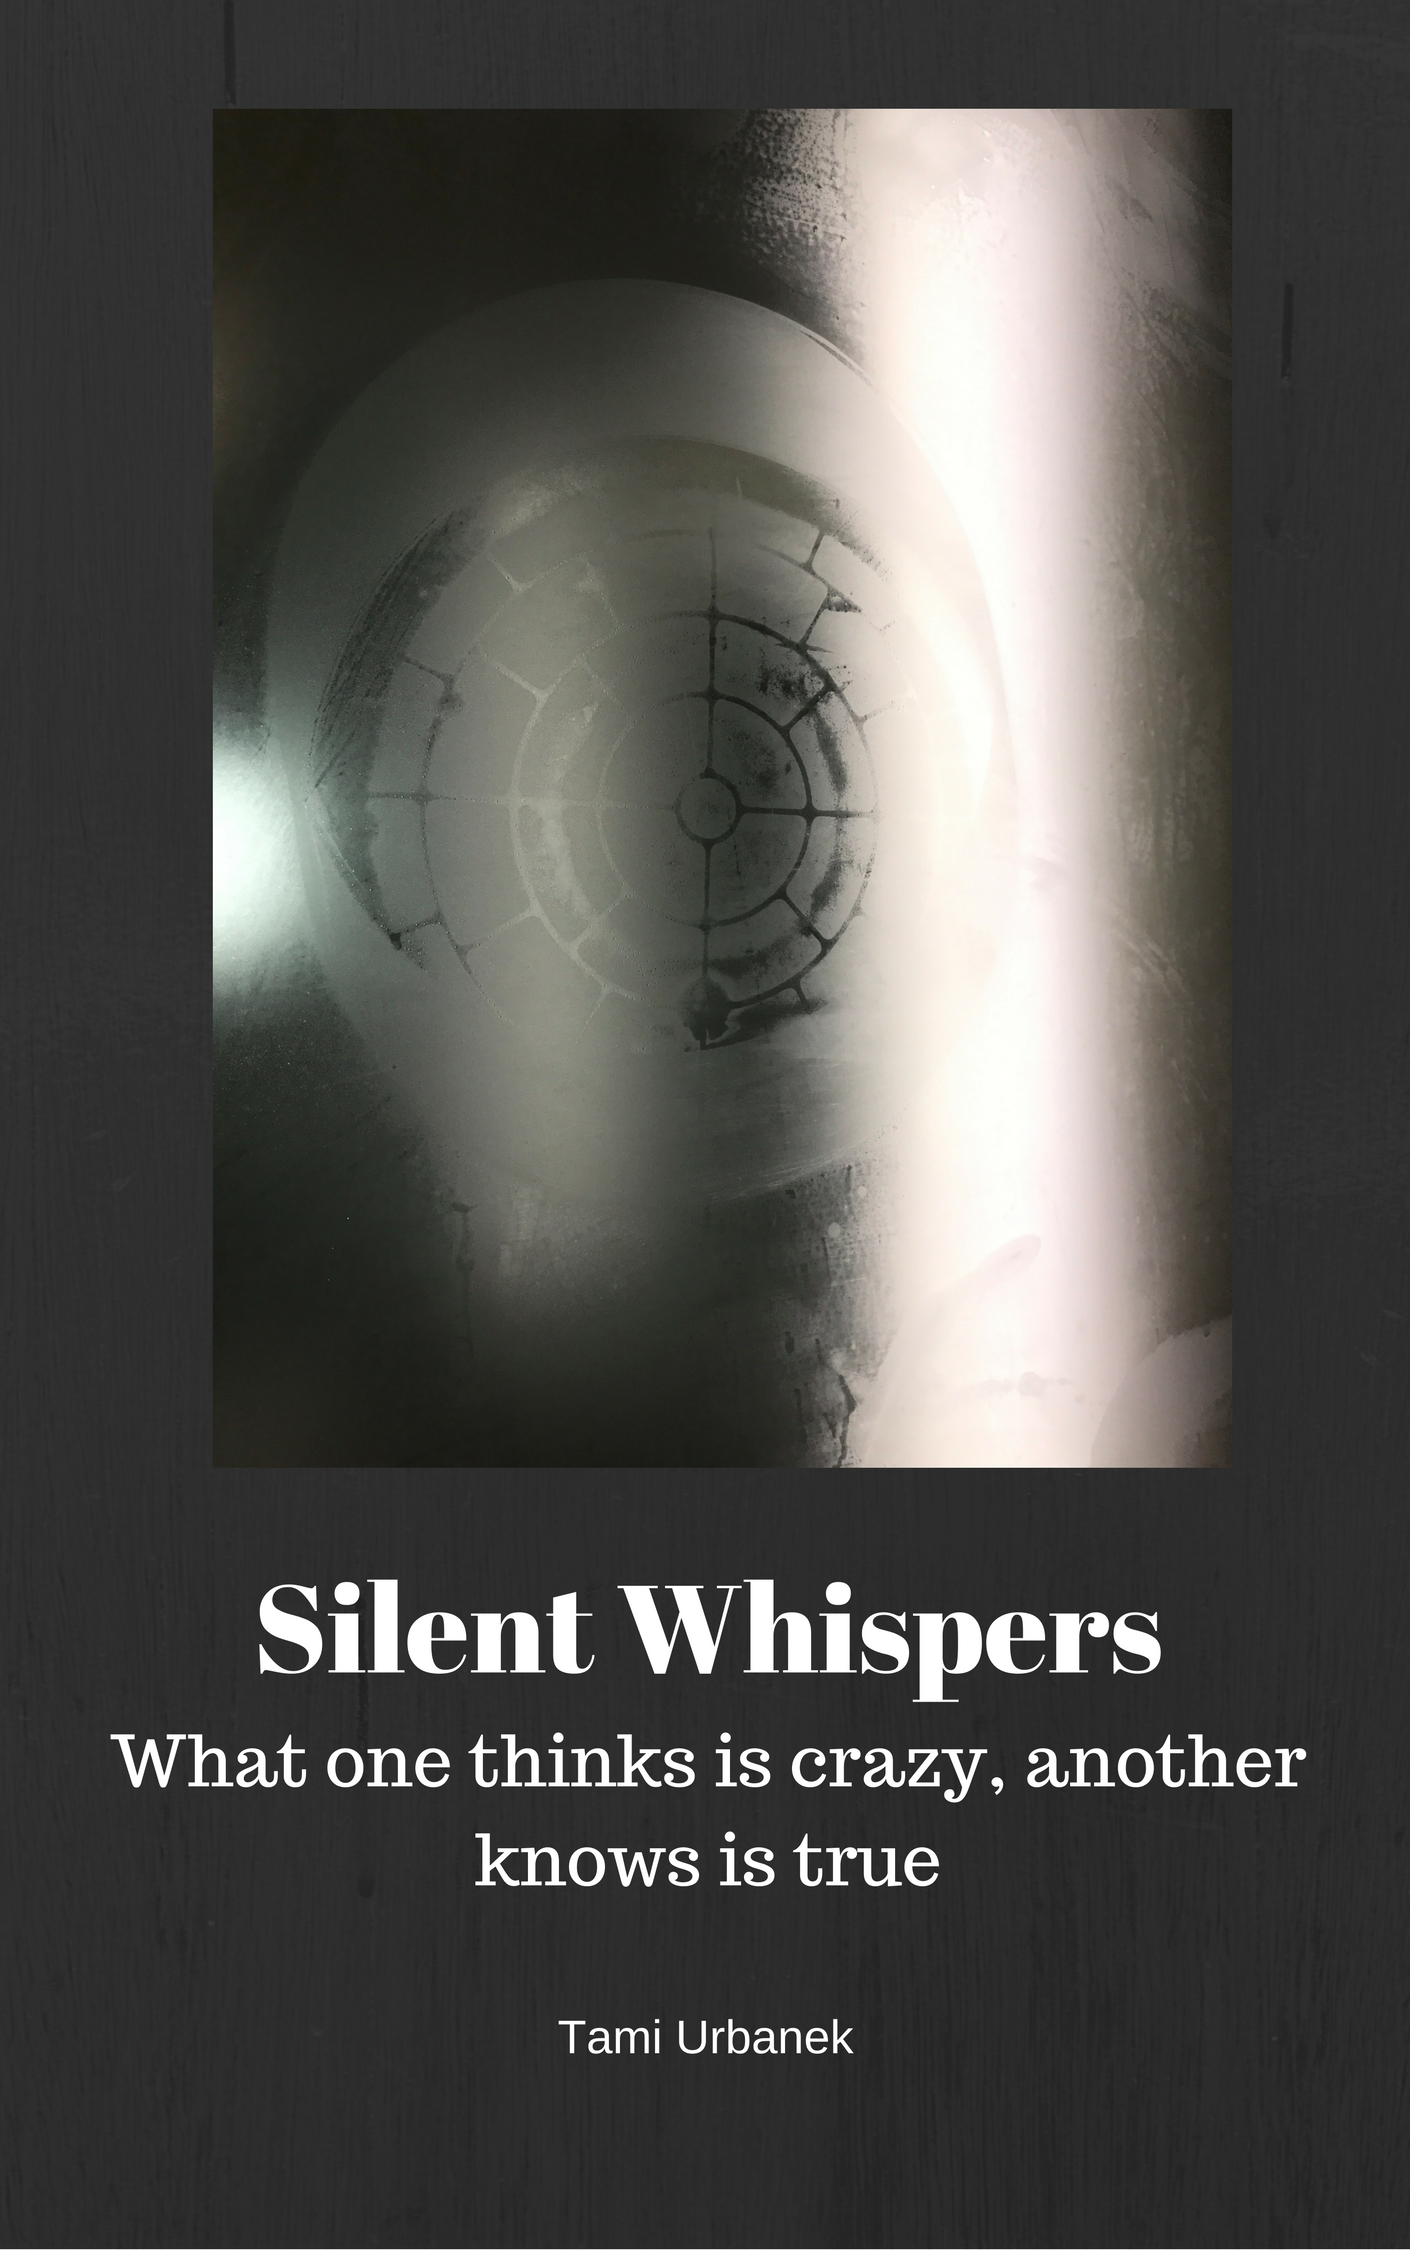 Feedback on Silent Whispers